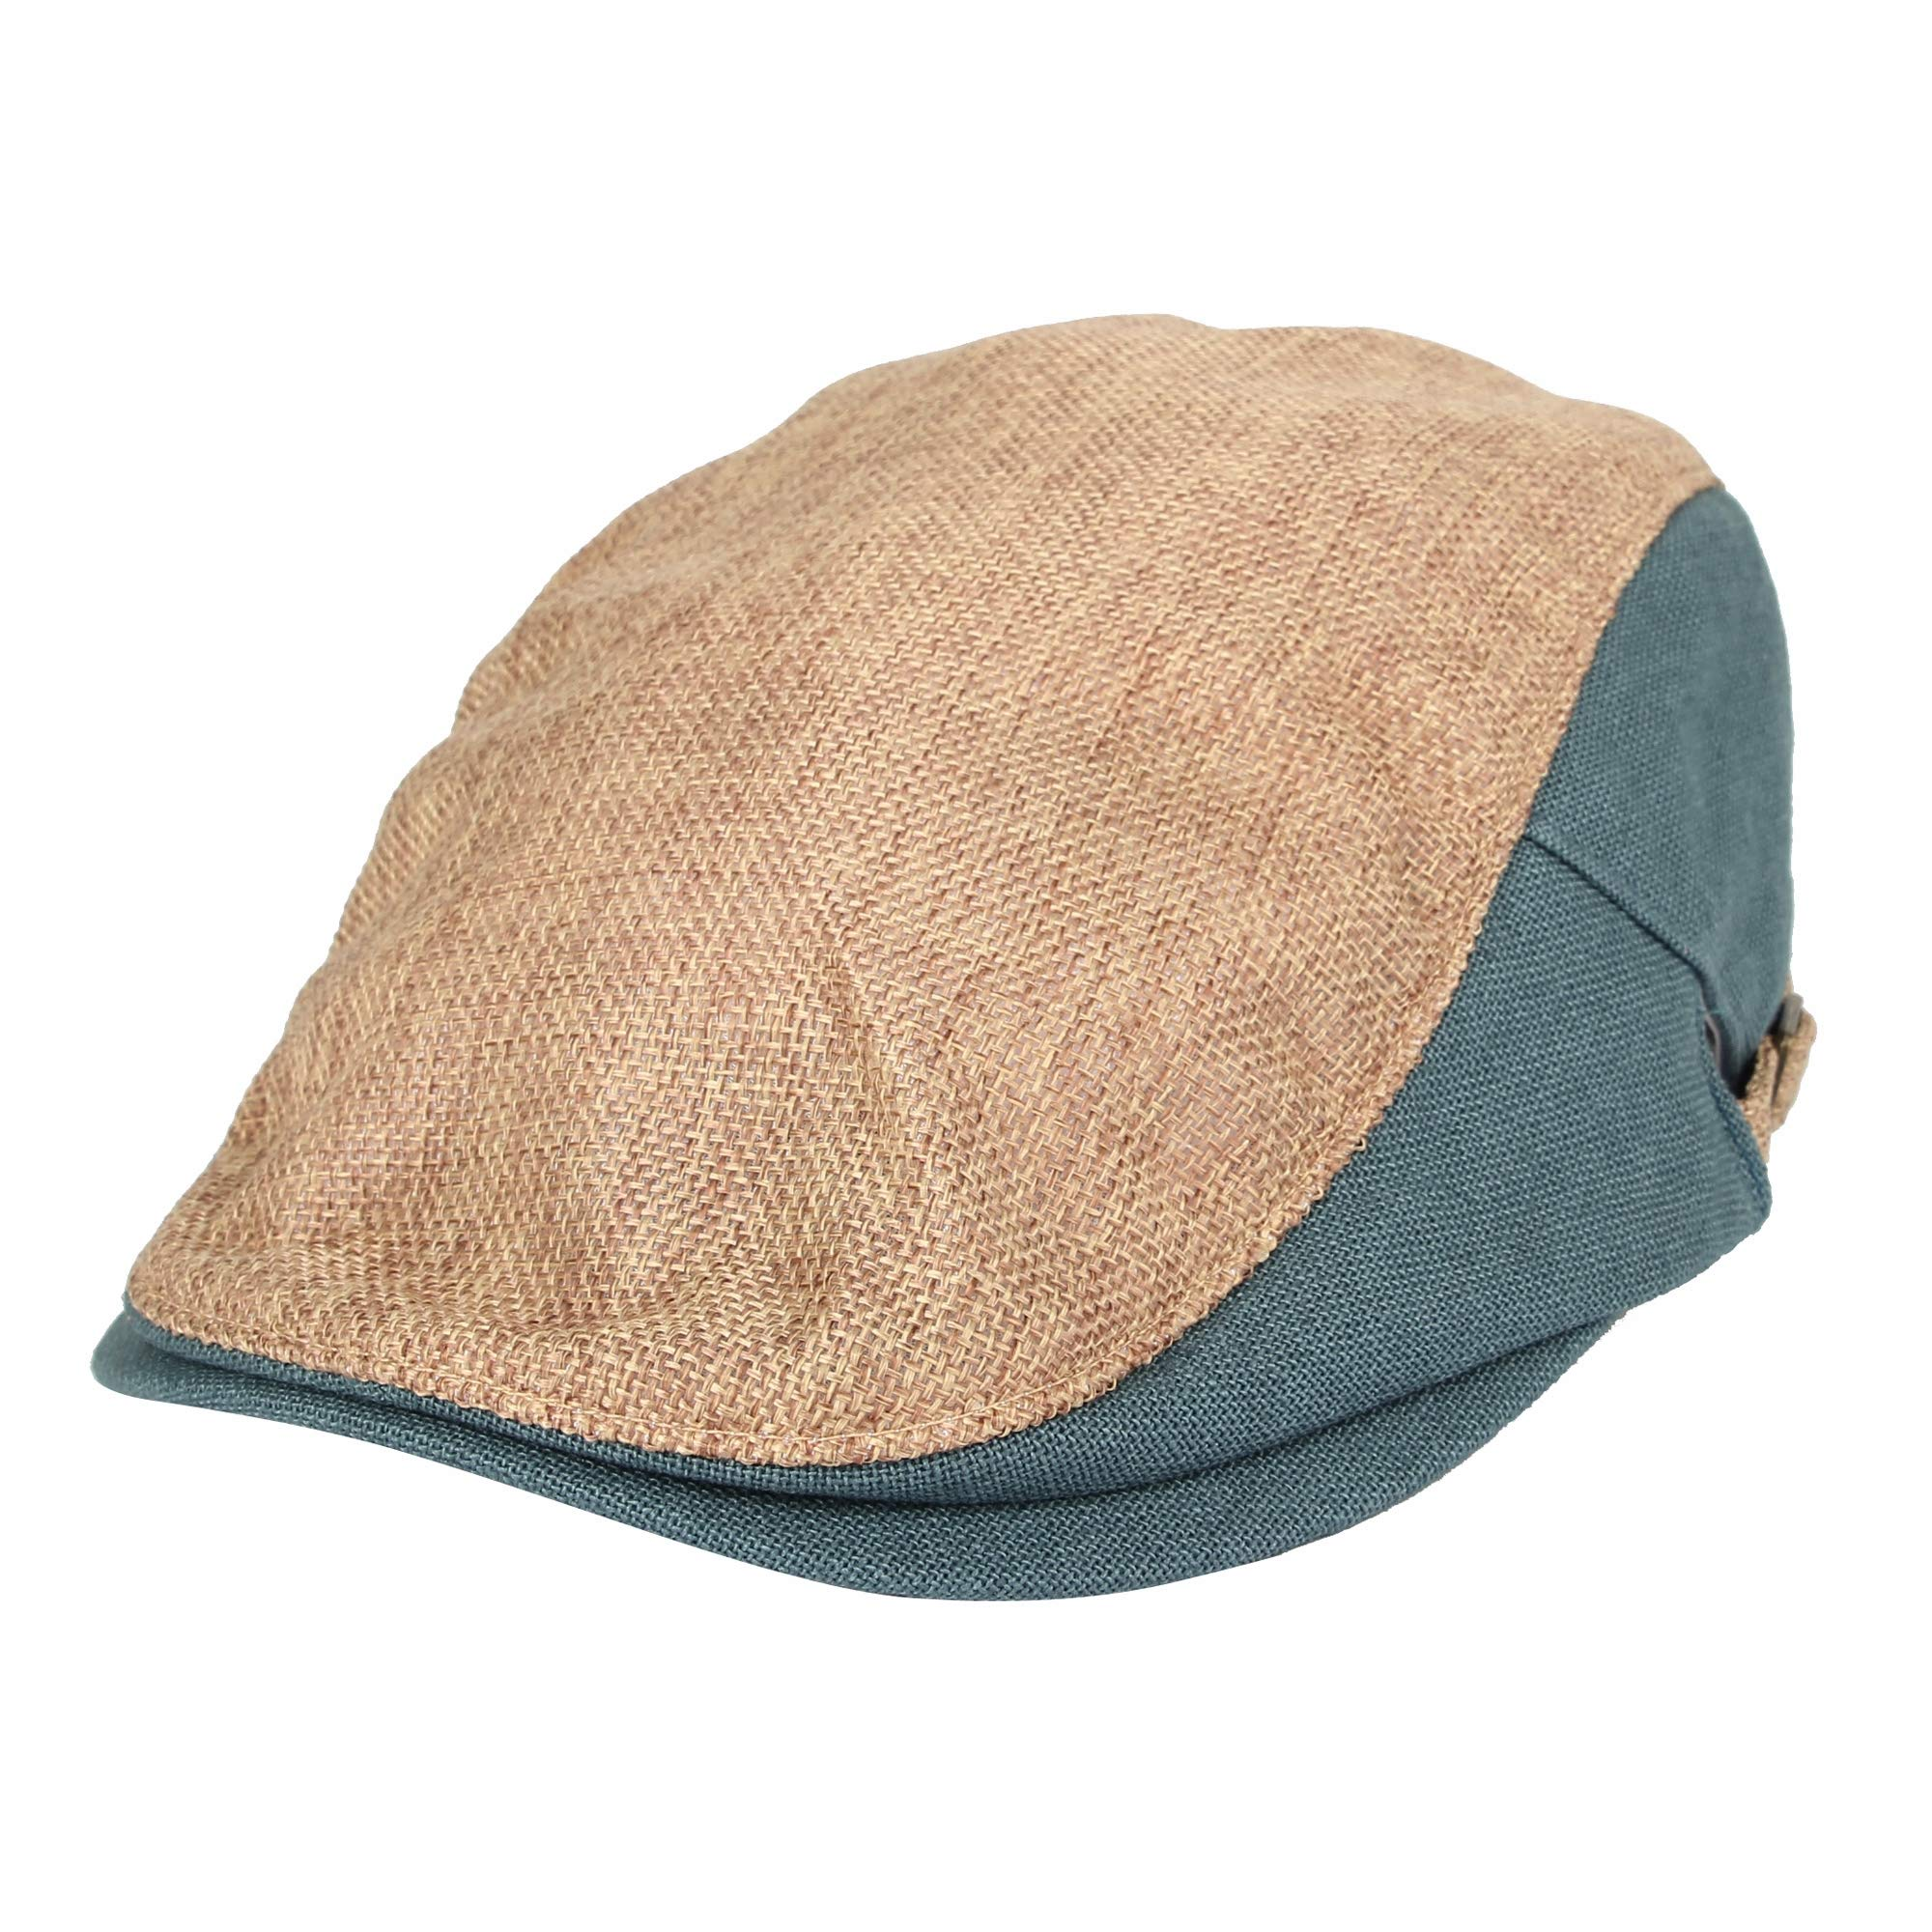 4ce6bef7 WITHMOONS Two Tone Block Summer Newsboy Hat Flat Cap AC3046 (Beige)